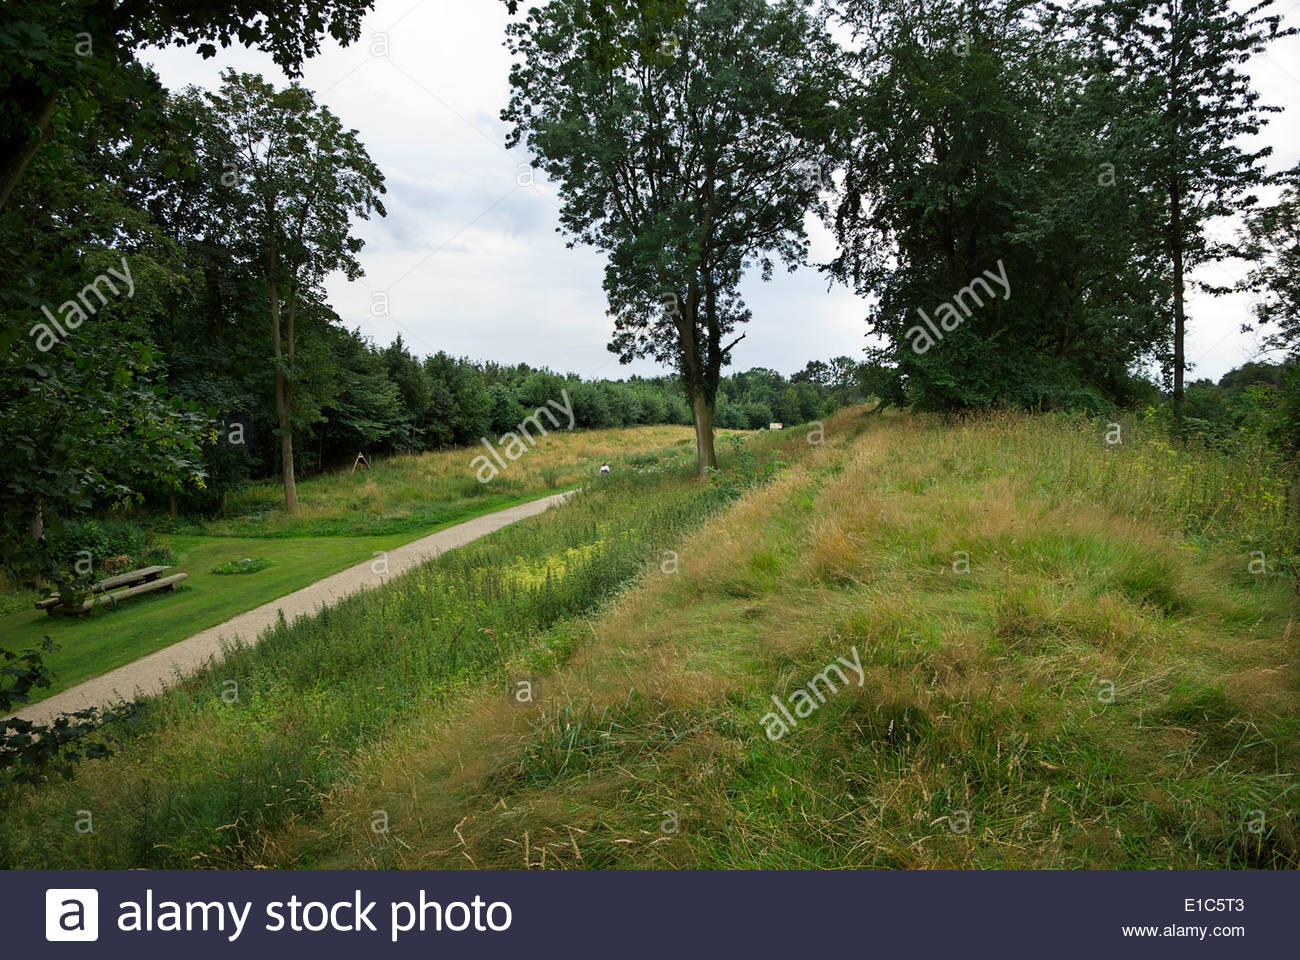 Danevirke, a earthwork fortification 19 mi (30 km) long built in phases between AD 737 and early 13th century by Danish rulers. - Stock Image